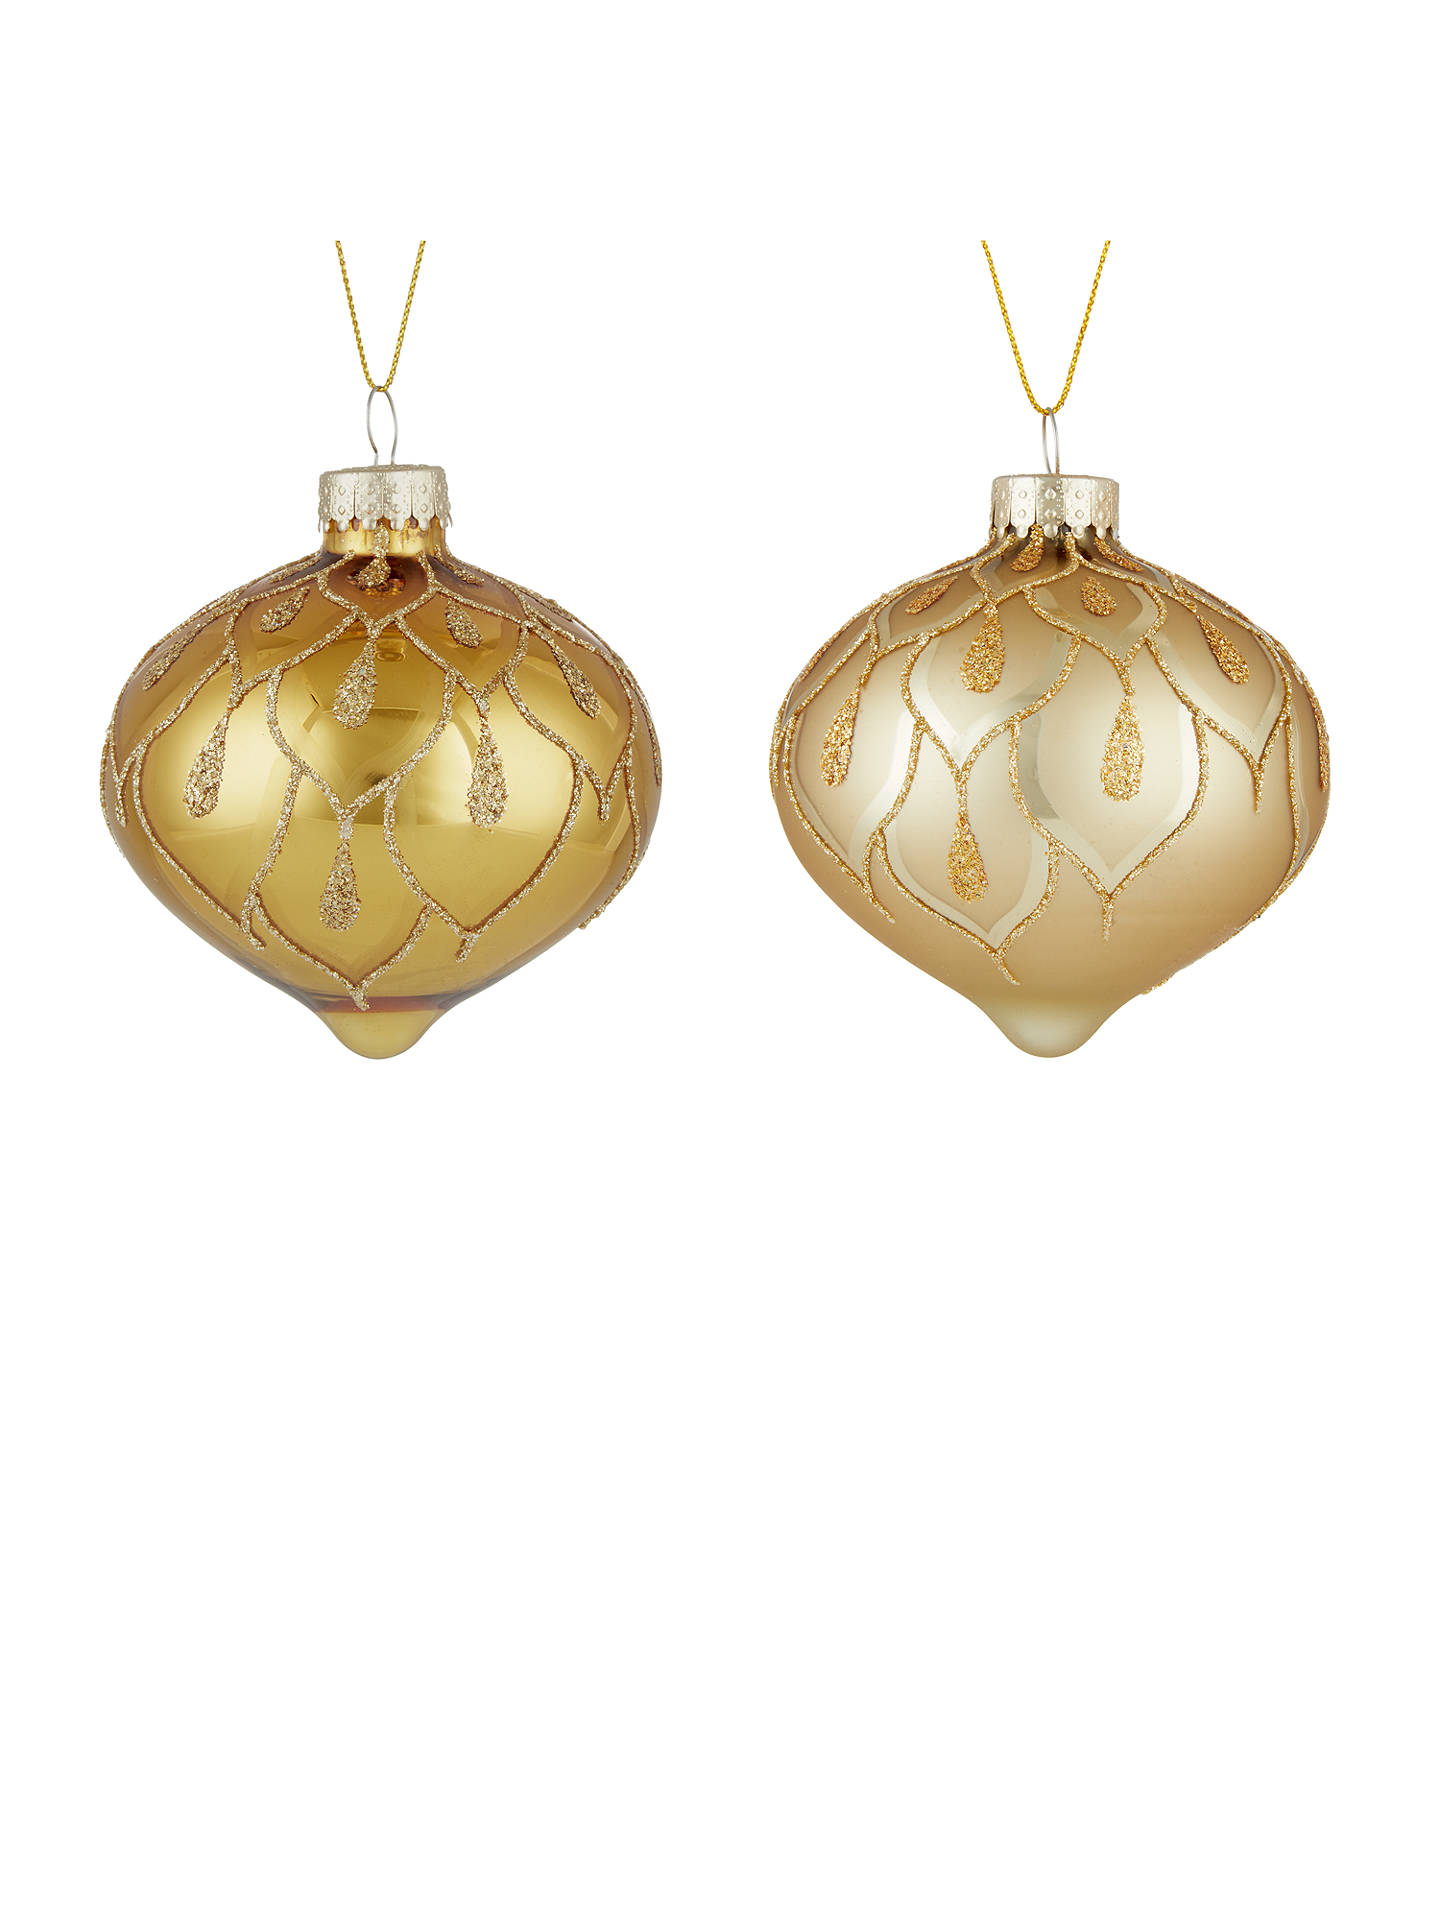 Buy John Lewis & Partners Gold Onion Bauble, Box of 3, Gold Online at johnlewis.com